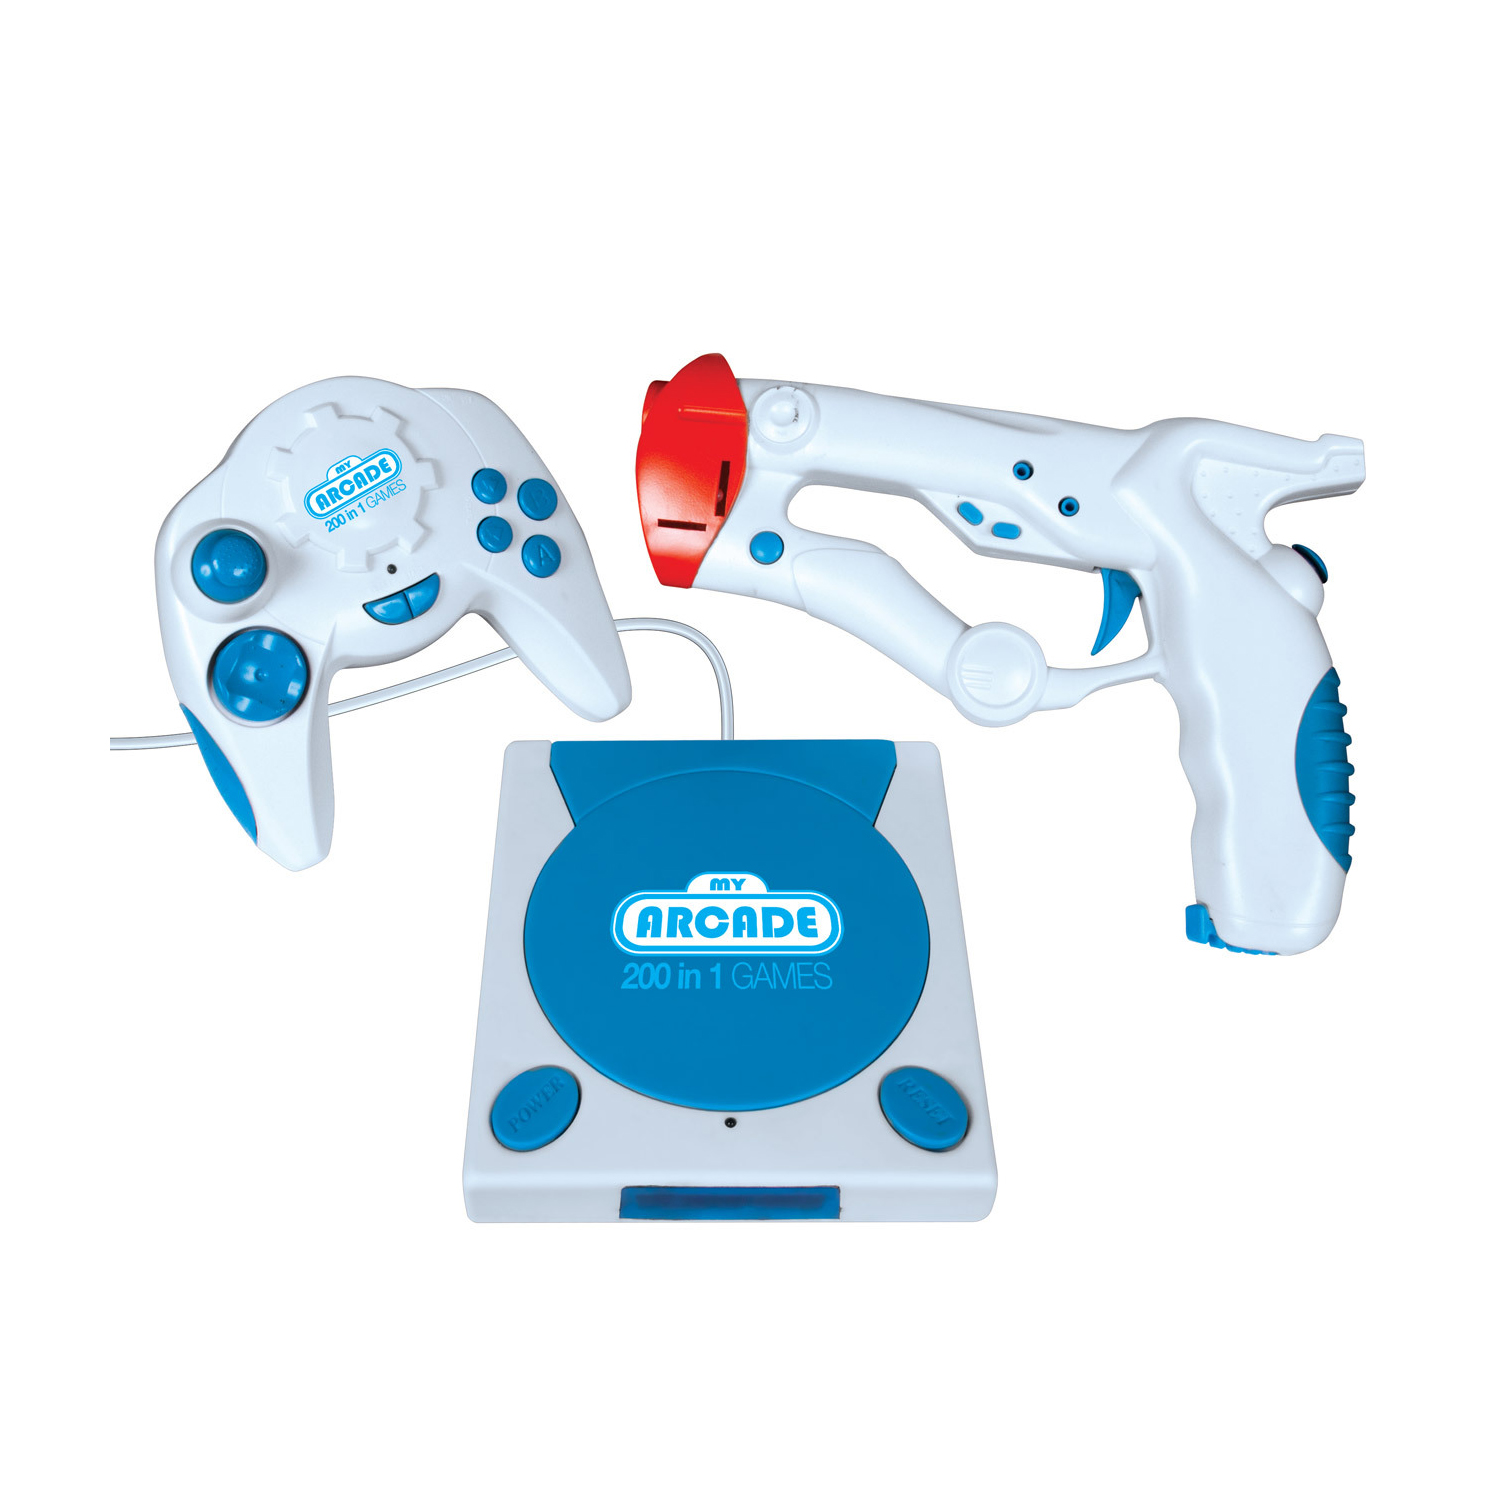 Dreamgear DGUN-2572  My Arcade Video Game Station with 200 Built-In Games